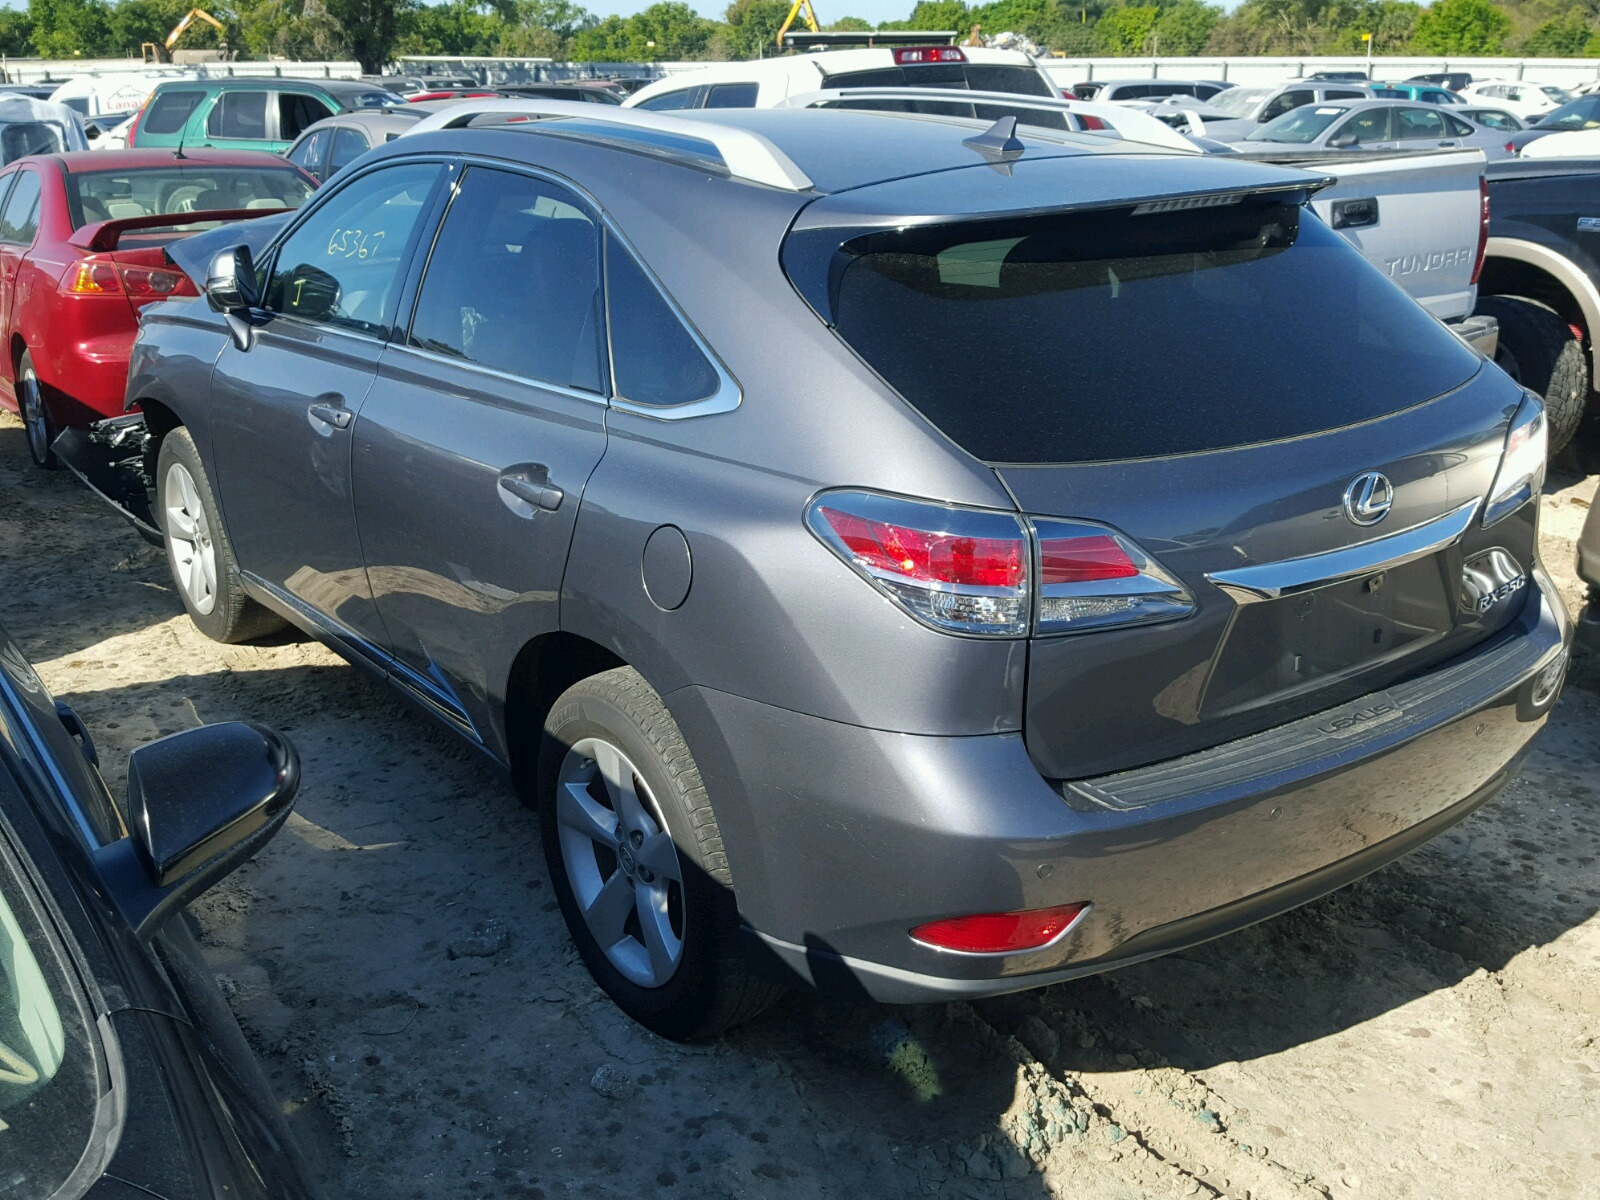 drive f sport lexus unrated suv first fsport flair turbo rx